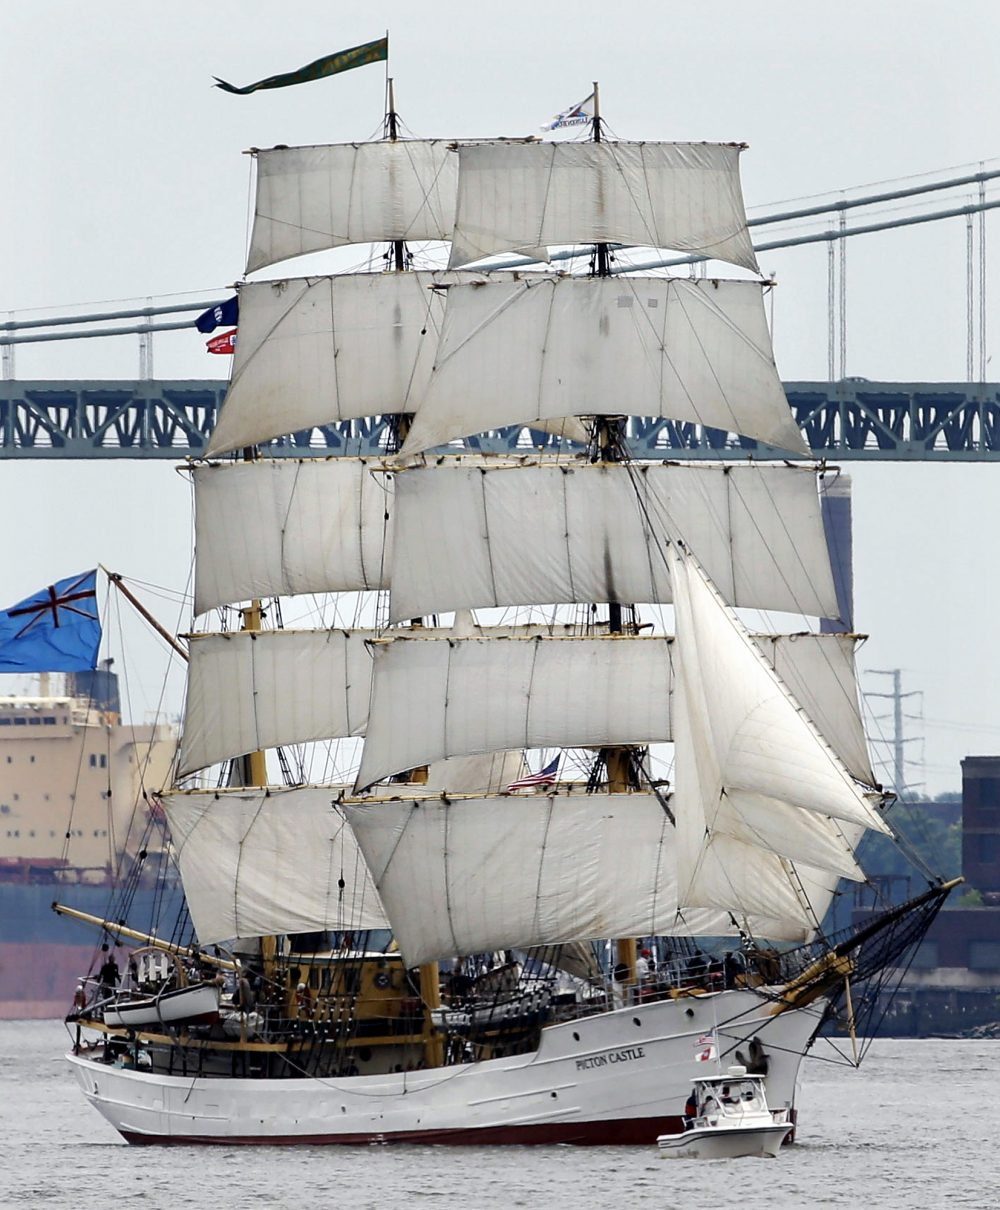 The Picton Castle sails up the Delaware River between Camden, N.J. and Philadelphia during a 2015 tall ships parade. (Matt Slocum/AP)